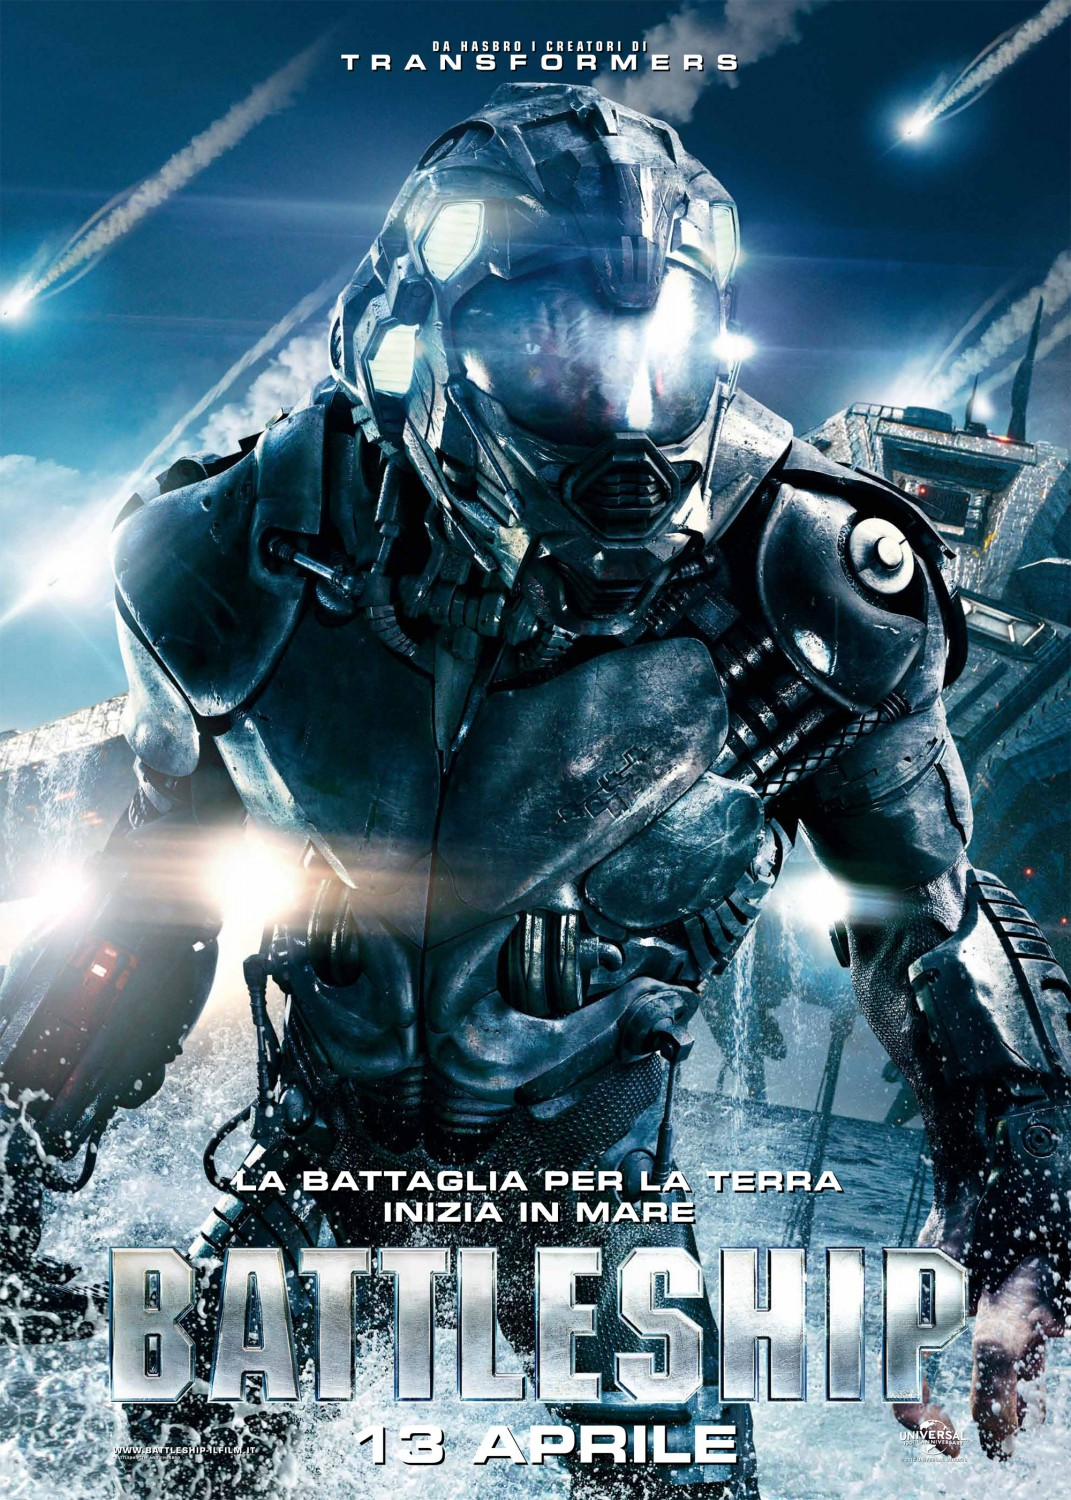 Battleship-Movie-Posters-battleship-2012-movie-30752383-1071-1500.jpg